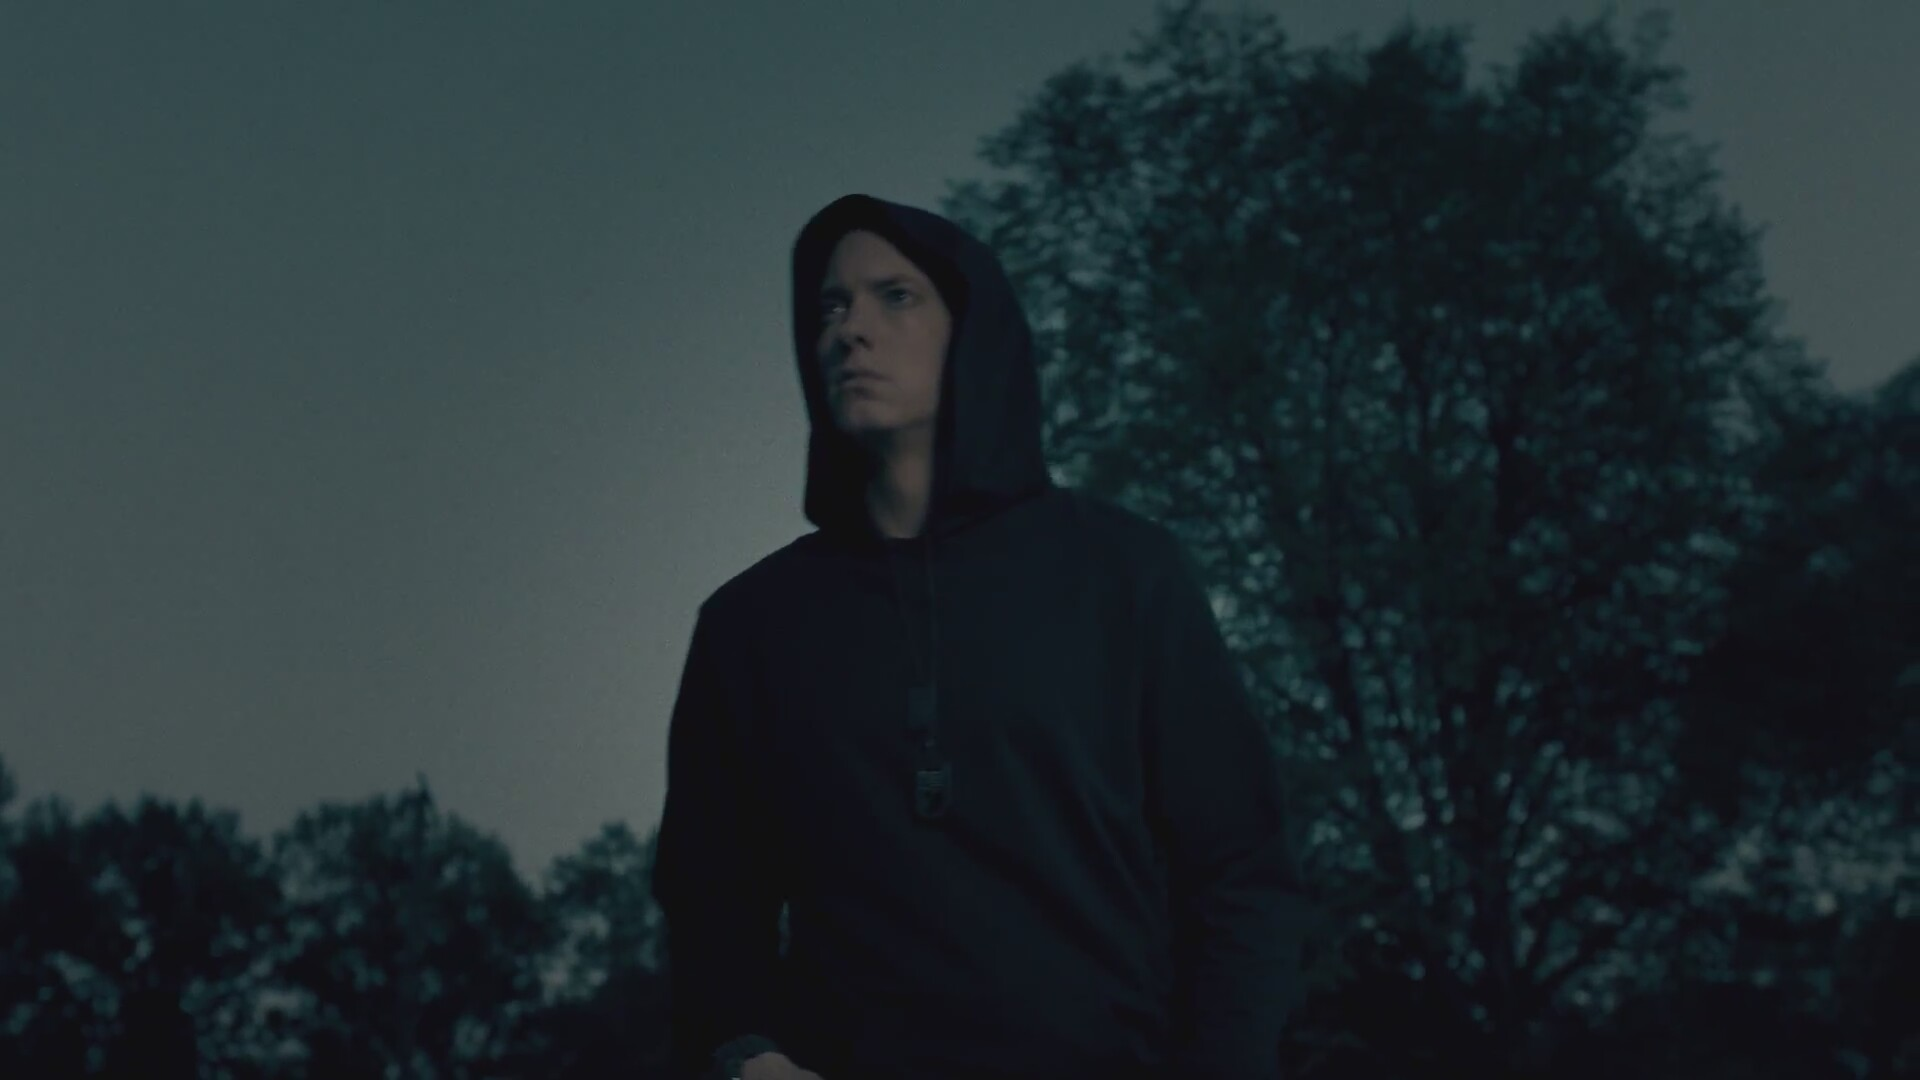 Eminem Survival Wallpaper   traffic club 1920x1080